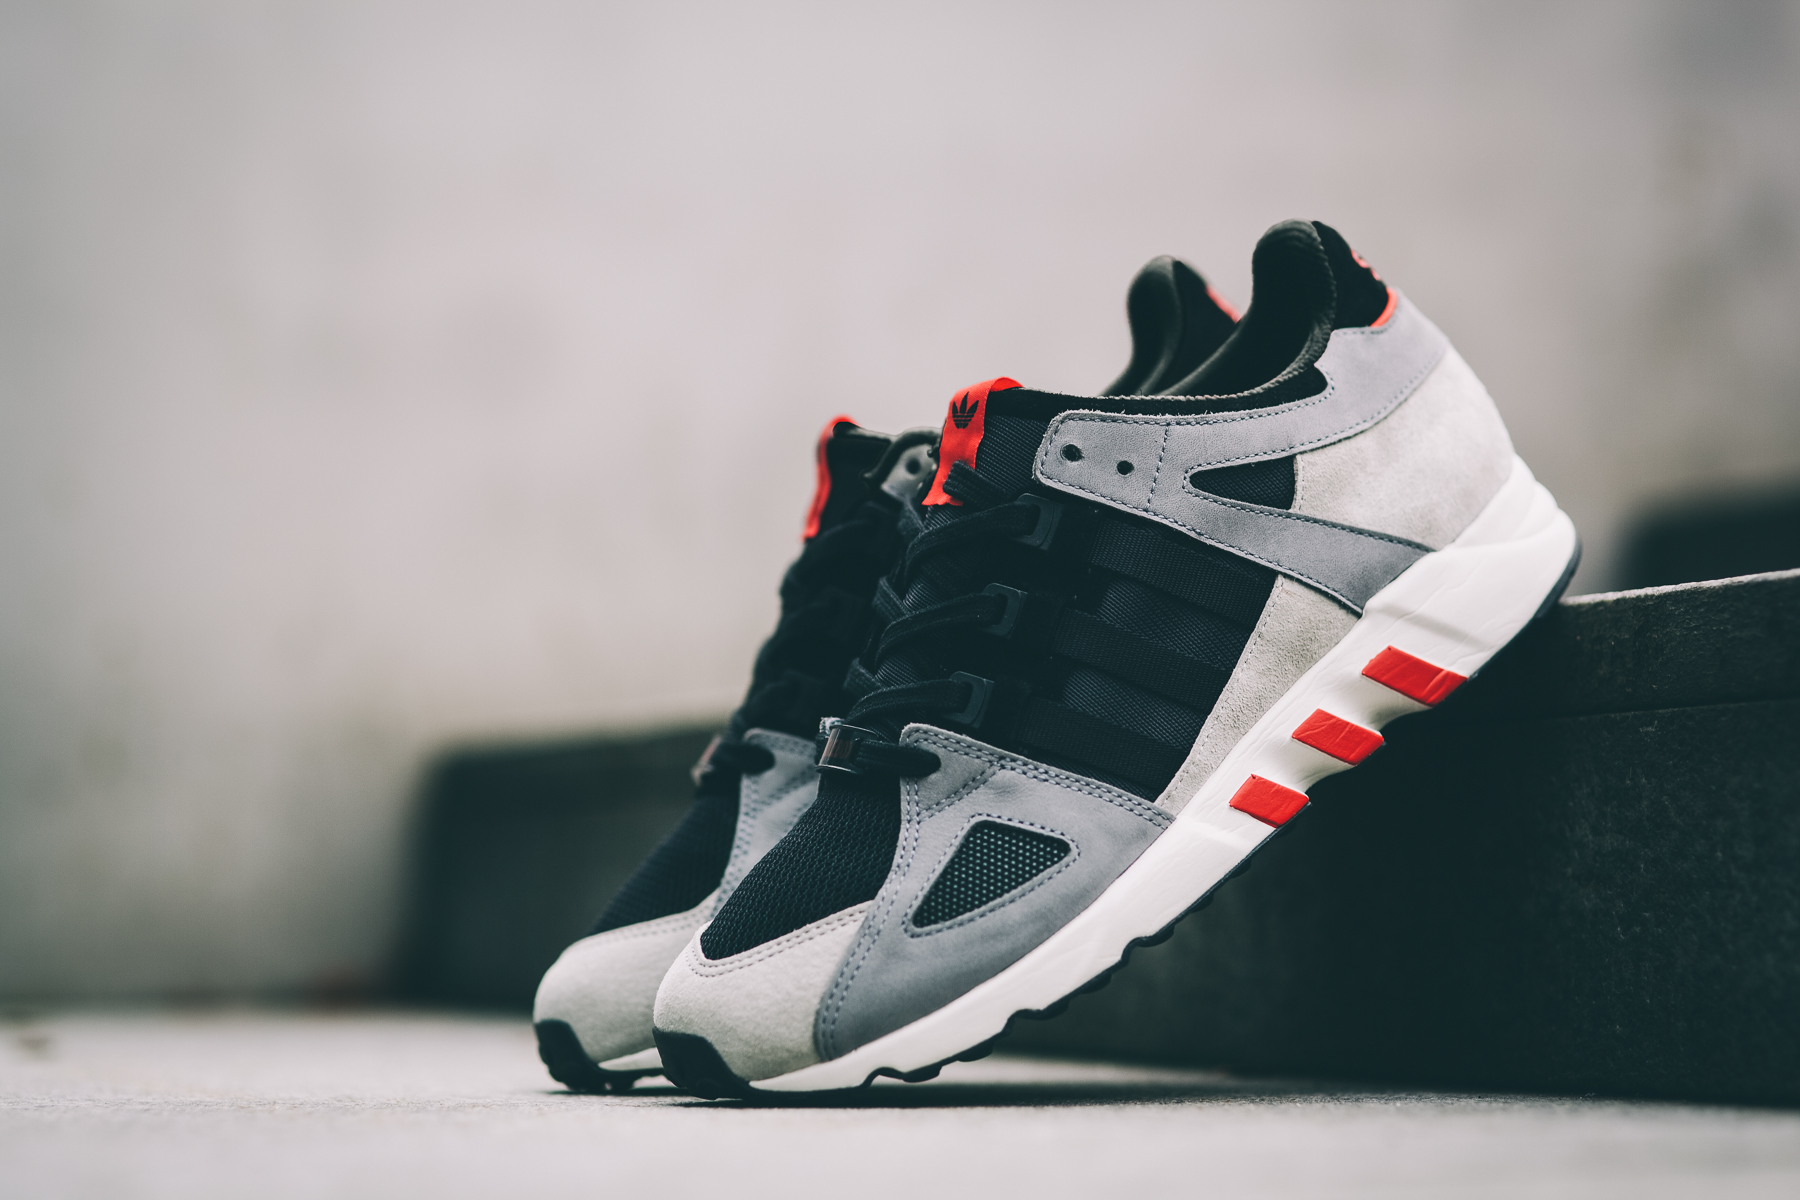 newest 9ff0c 4aa51 The Solebox x adidas Consortium EQT Guidance 93 is an ...